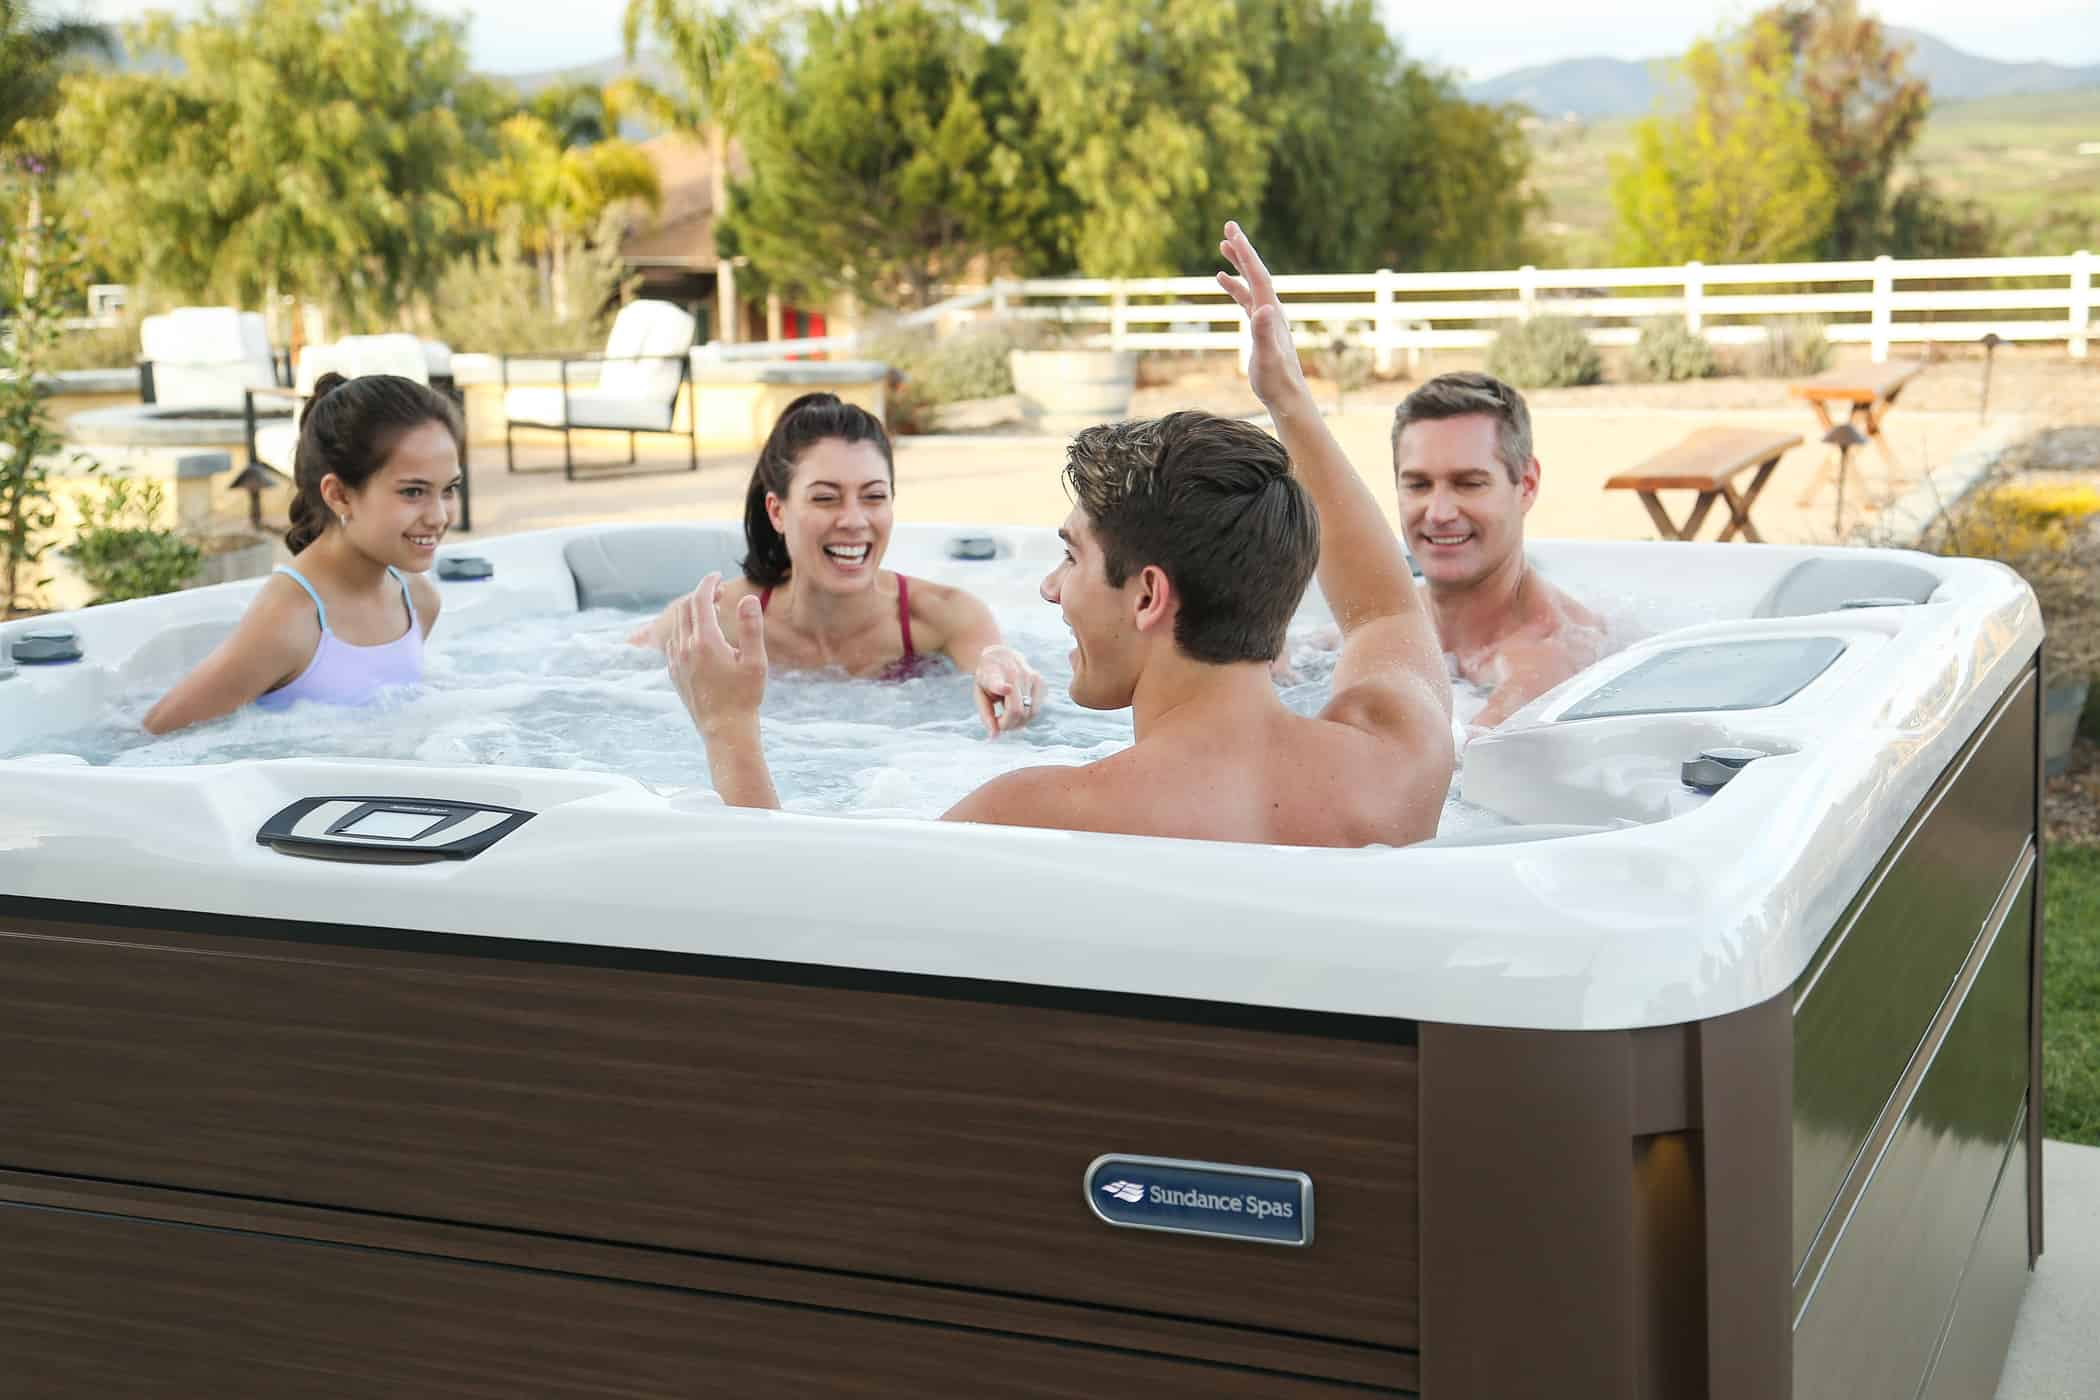 Optima Sundance Spas hot tub installation with happy family inside.